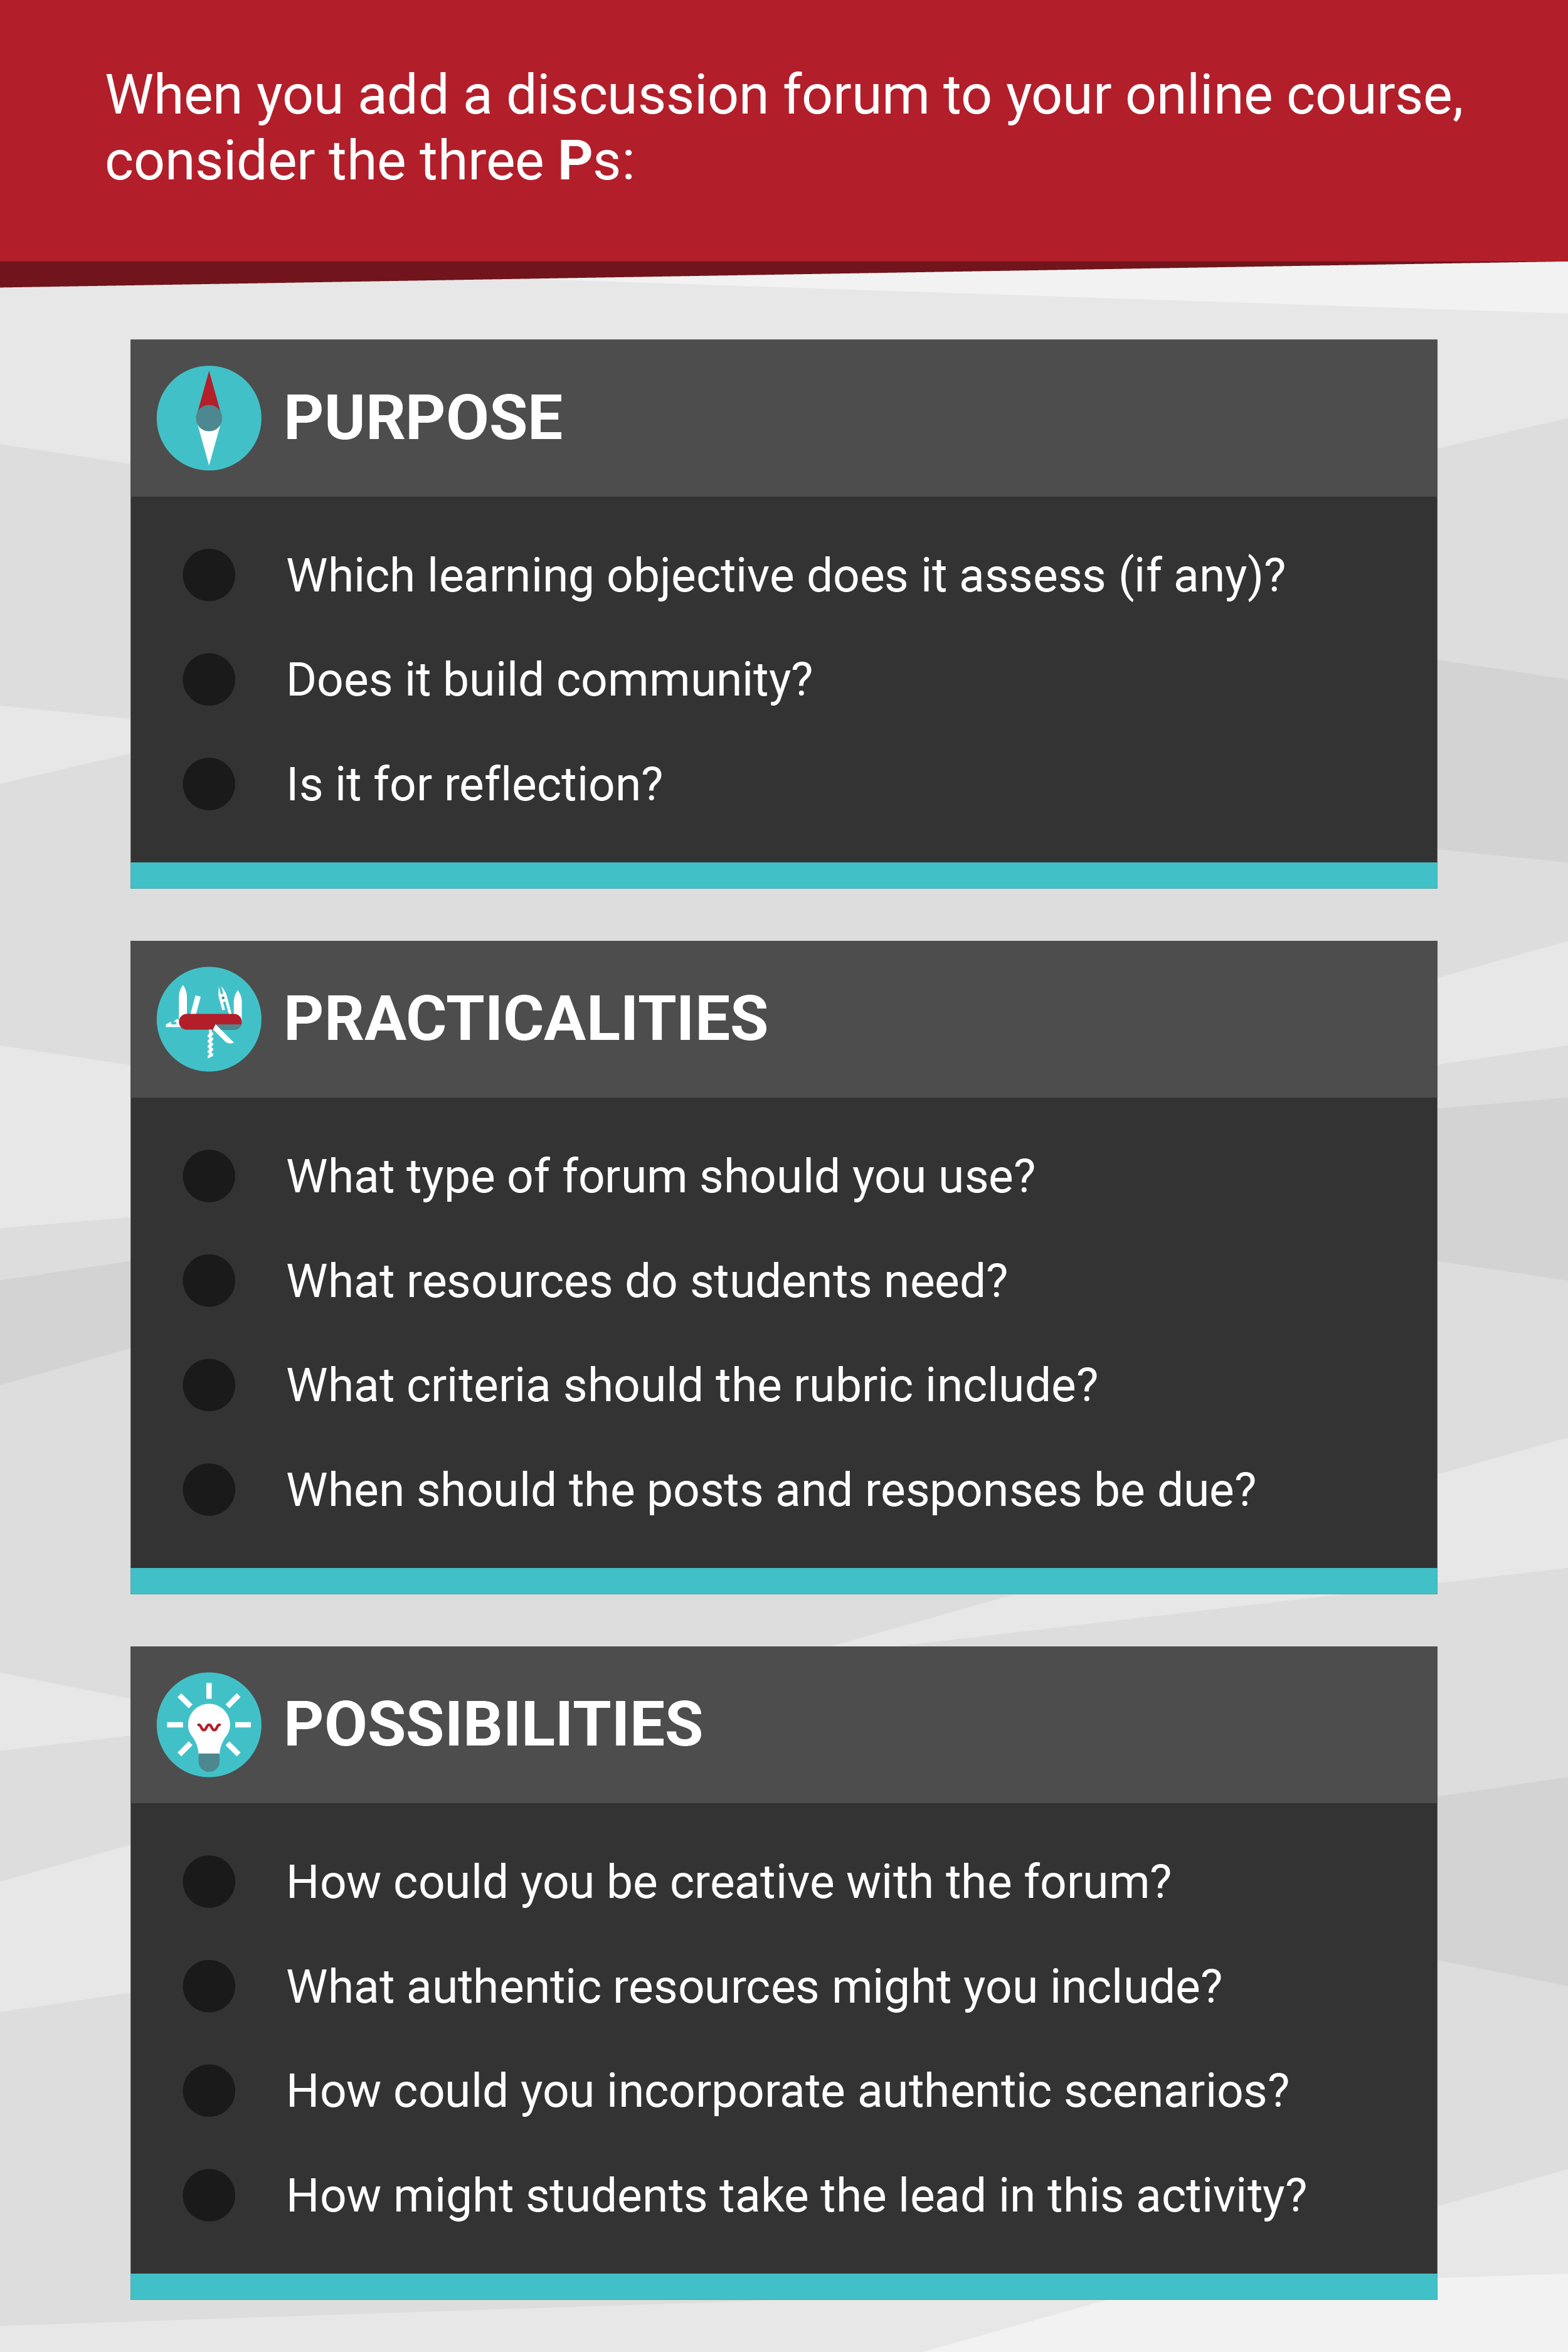 When you add a discussion forum to your online course, consider its purpose, practicalities, and possibilities. Purpose: Which learning objective does it access (if any)? Does it build community? It is for reflection? Practicalities: What type of forum should you use? What resources do students need? What criteria should the rubric include? When should the posts and responses be due? Possibilities: How could you be creative with the forum? What authentic resources might you include? How could you incorporate authentic scenarios? How might students take the lead in this activity?